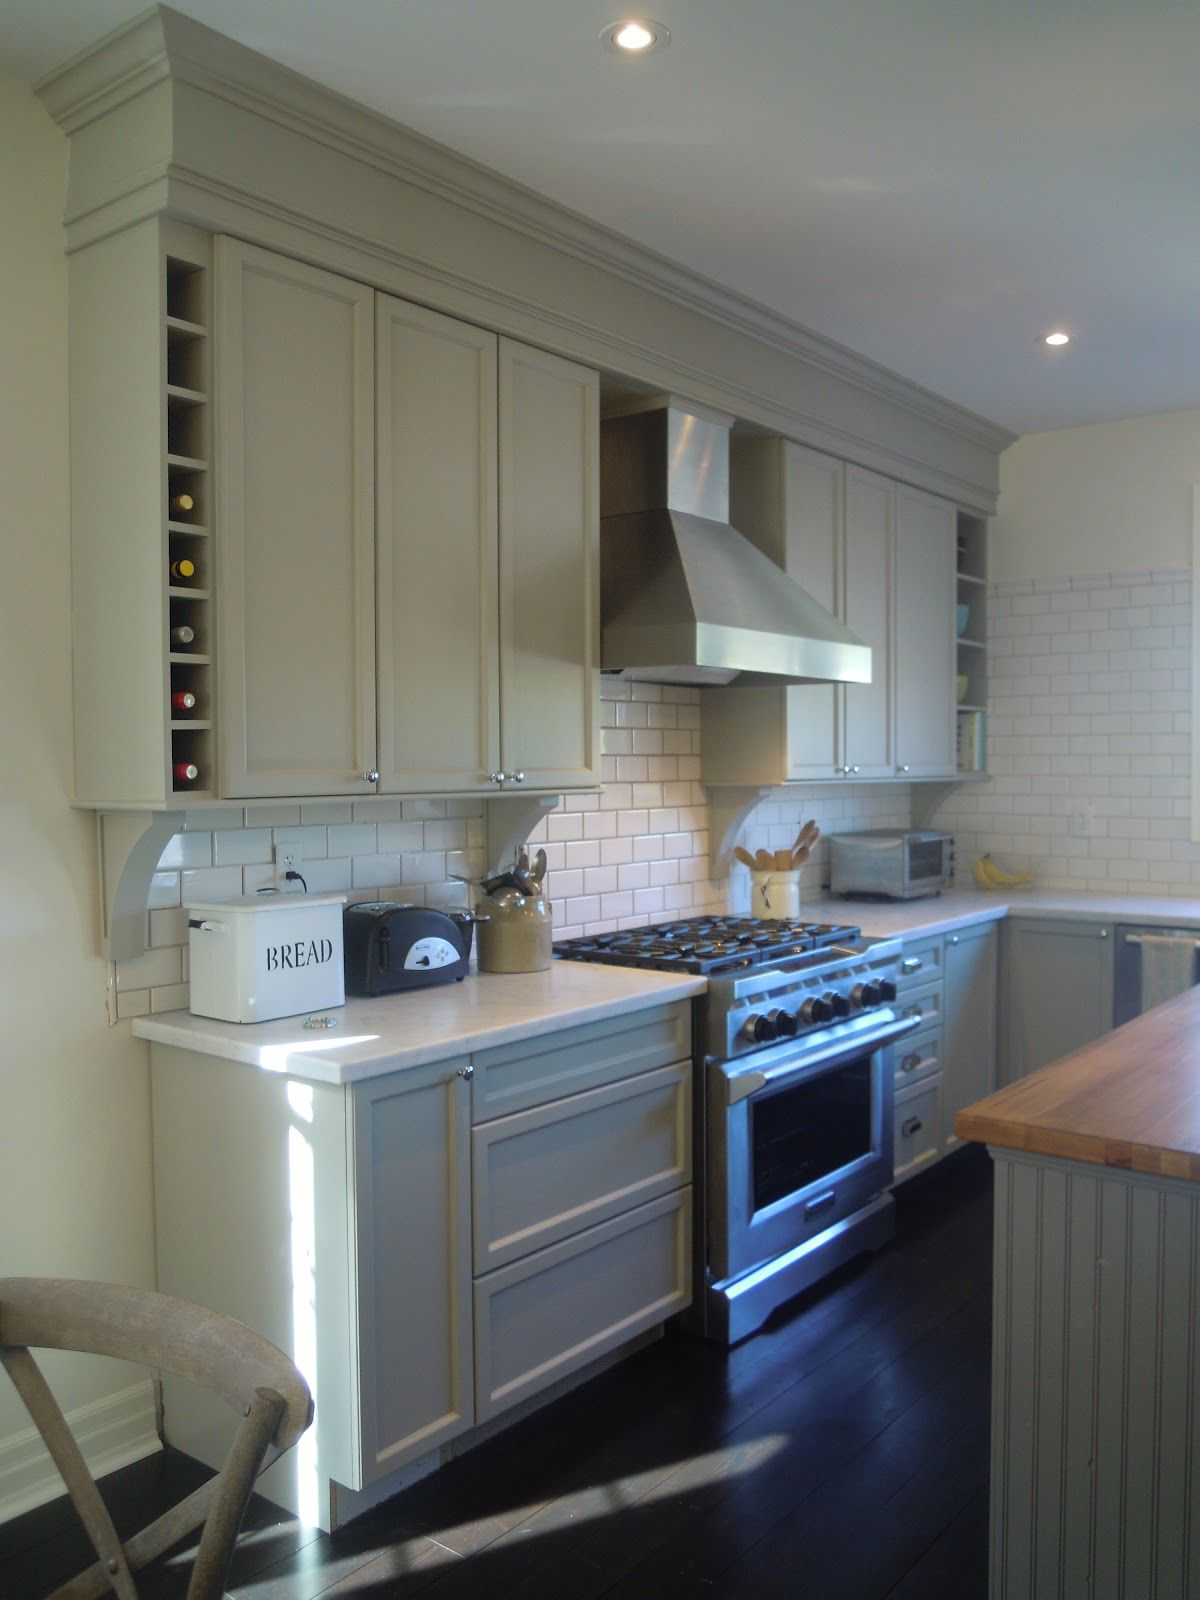 Pictures of crown molding above kitchen cabinets - Mouldings Crown Moulding Above Kitchen Cabinets To Create The Illusion Of Taller Cabinets Bayer